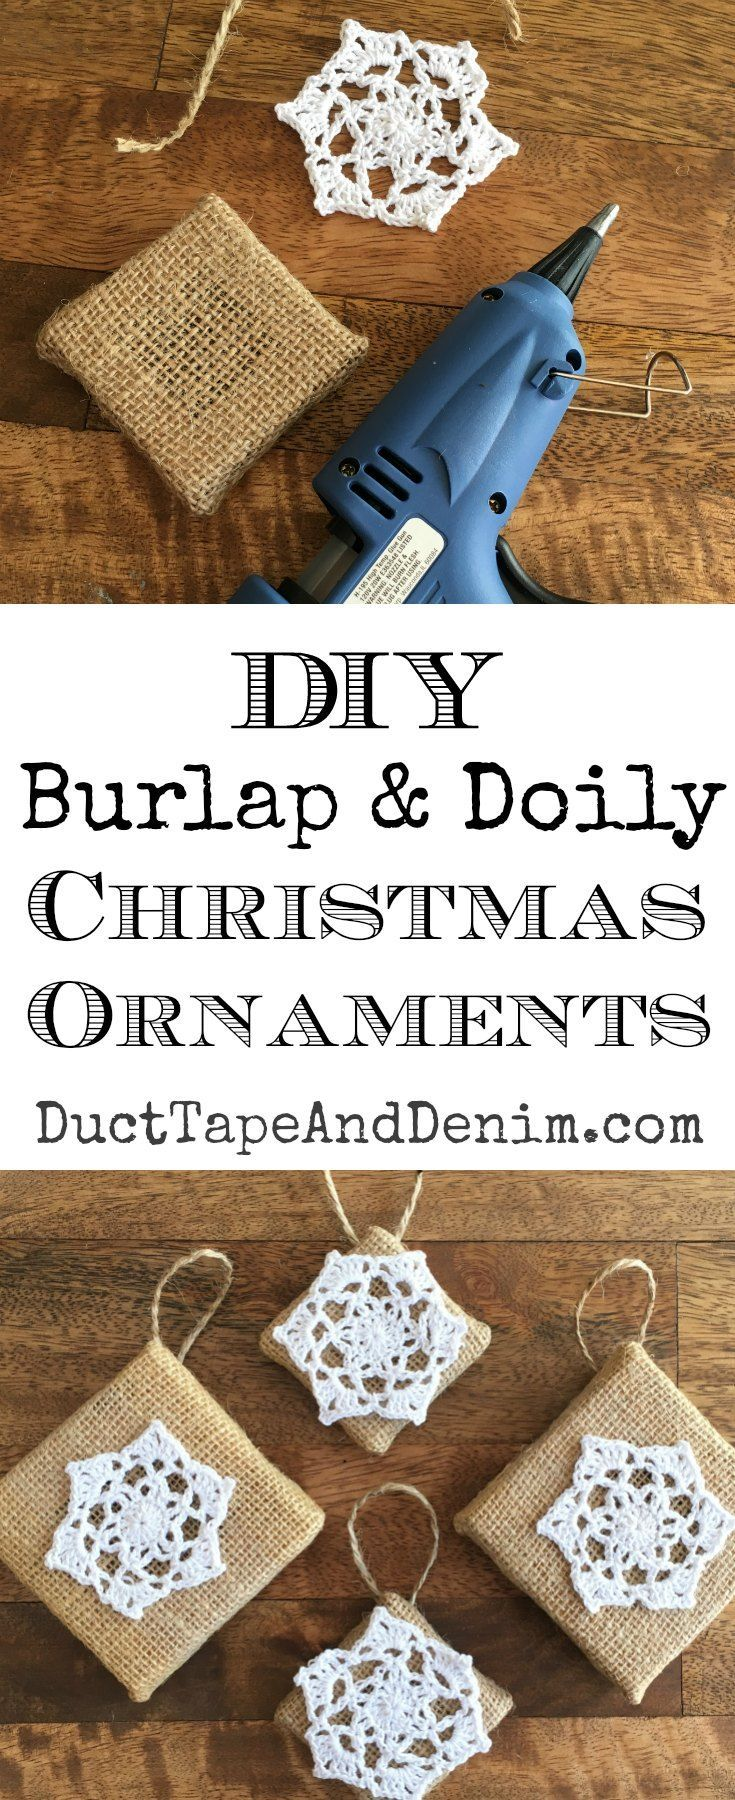 244 best christmas ornaments images on pinterest christmas crafts diy burlap and doily christmas ornaments solutioingenieria Gallery